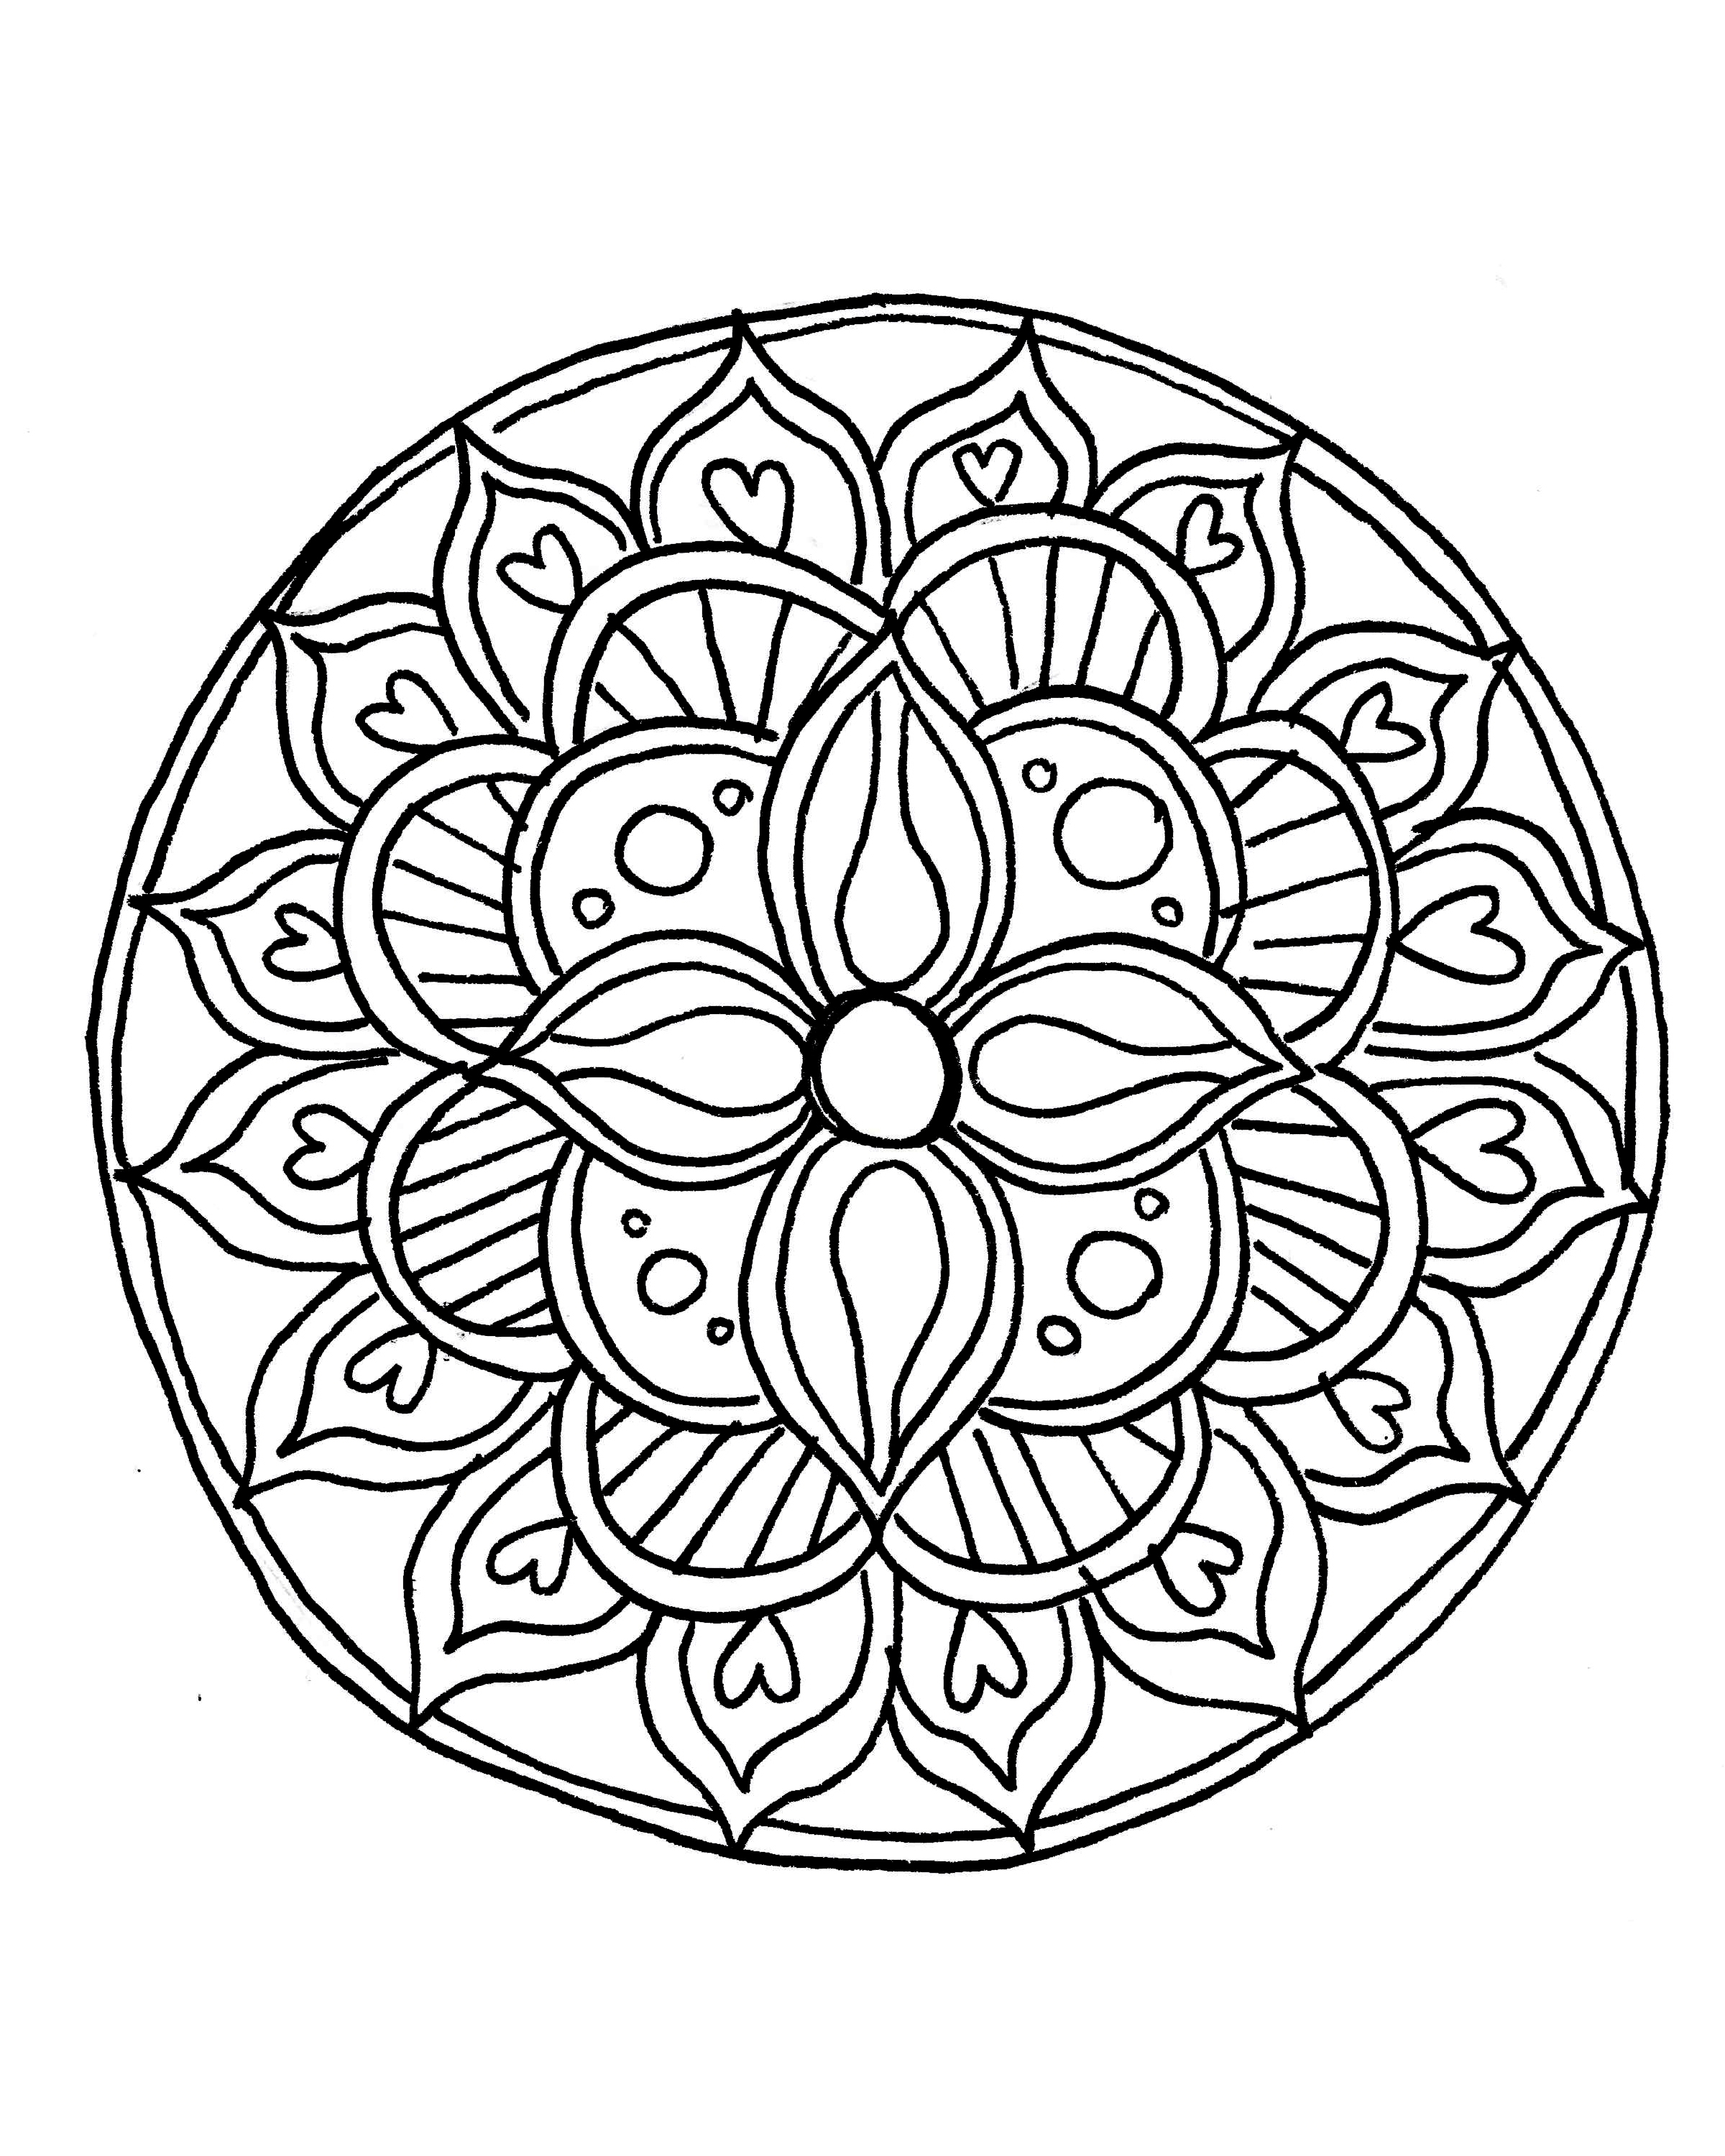 Printable Mandala Coloring Pages For Kids Free Books Of Animal